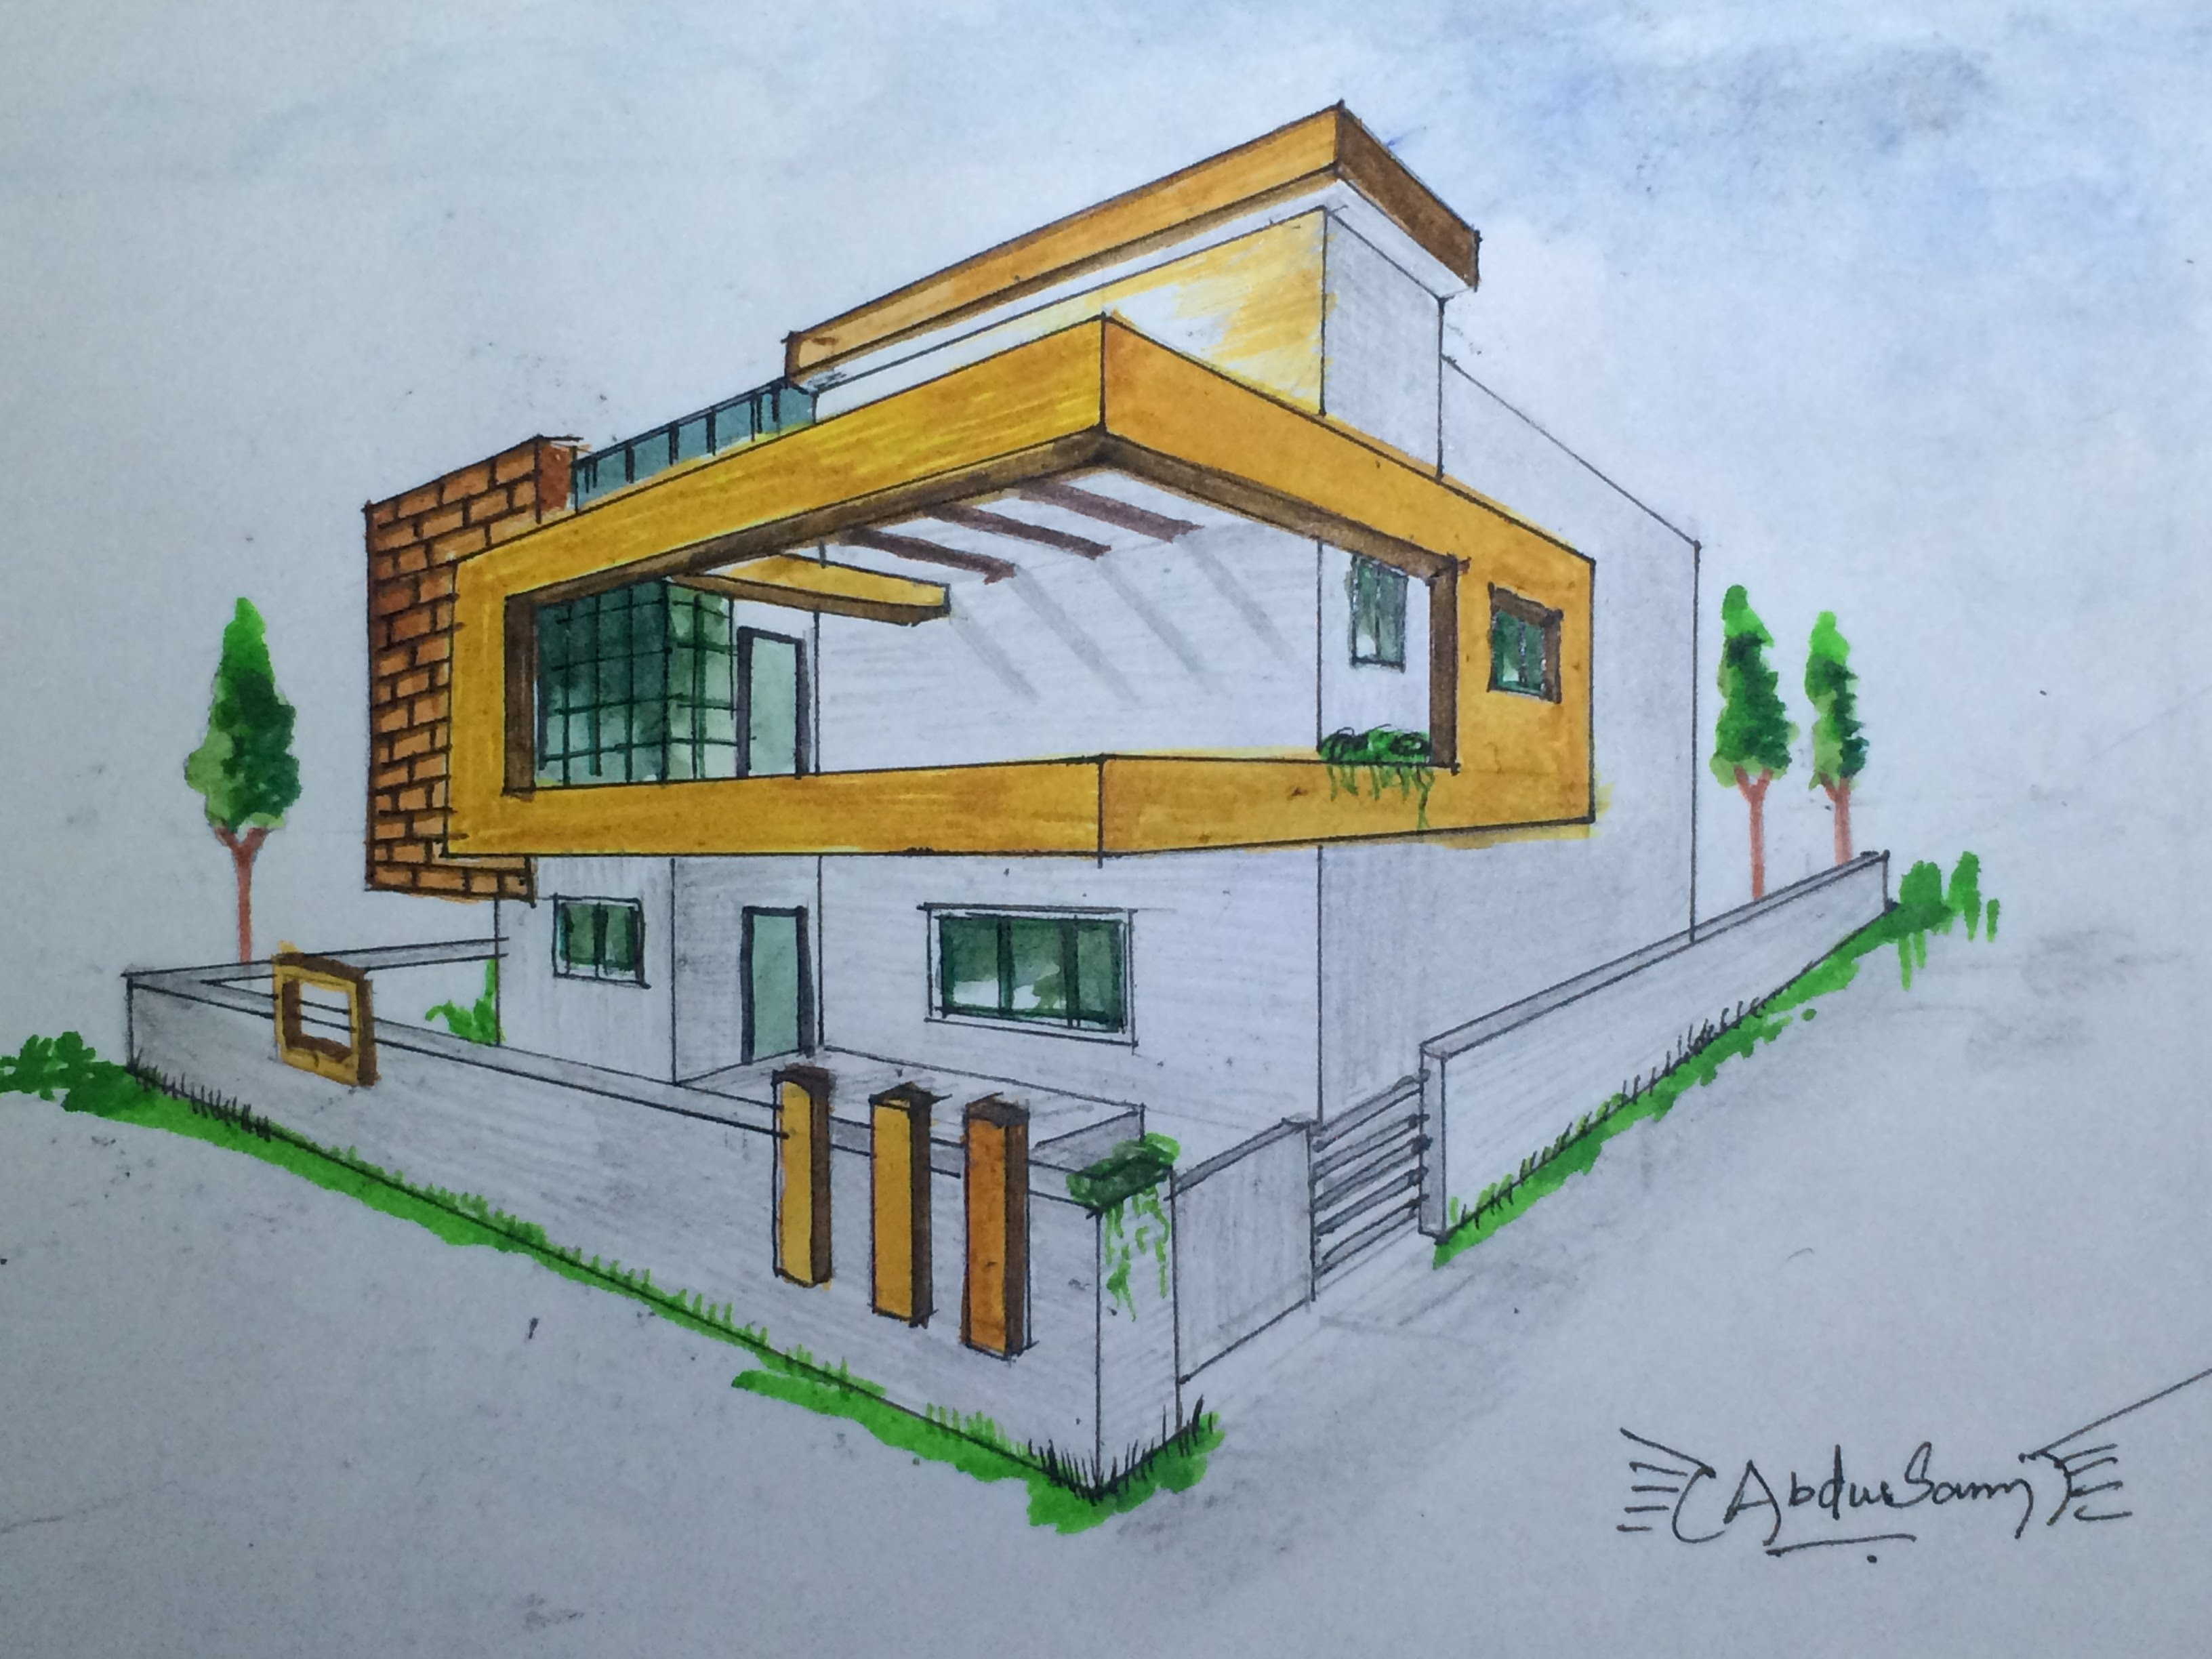 3264x2448 Architectural Perspective Drawing